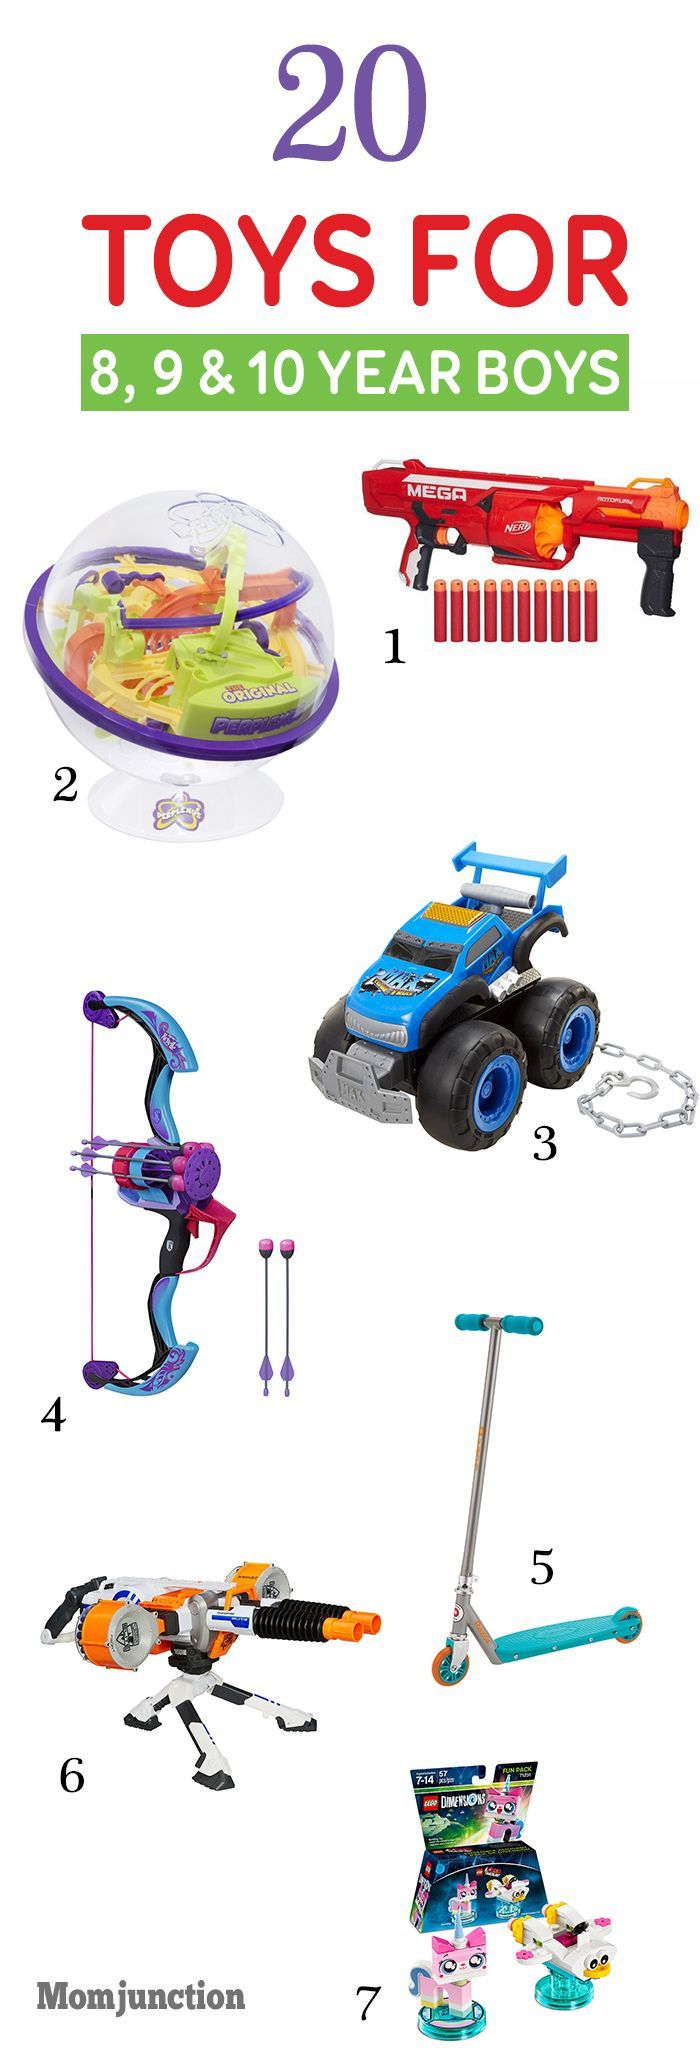 17 Best images about Best Christmas Toys for 8 Year Old Boys on.